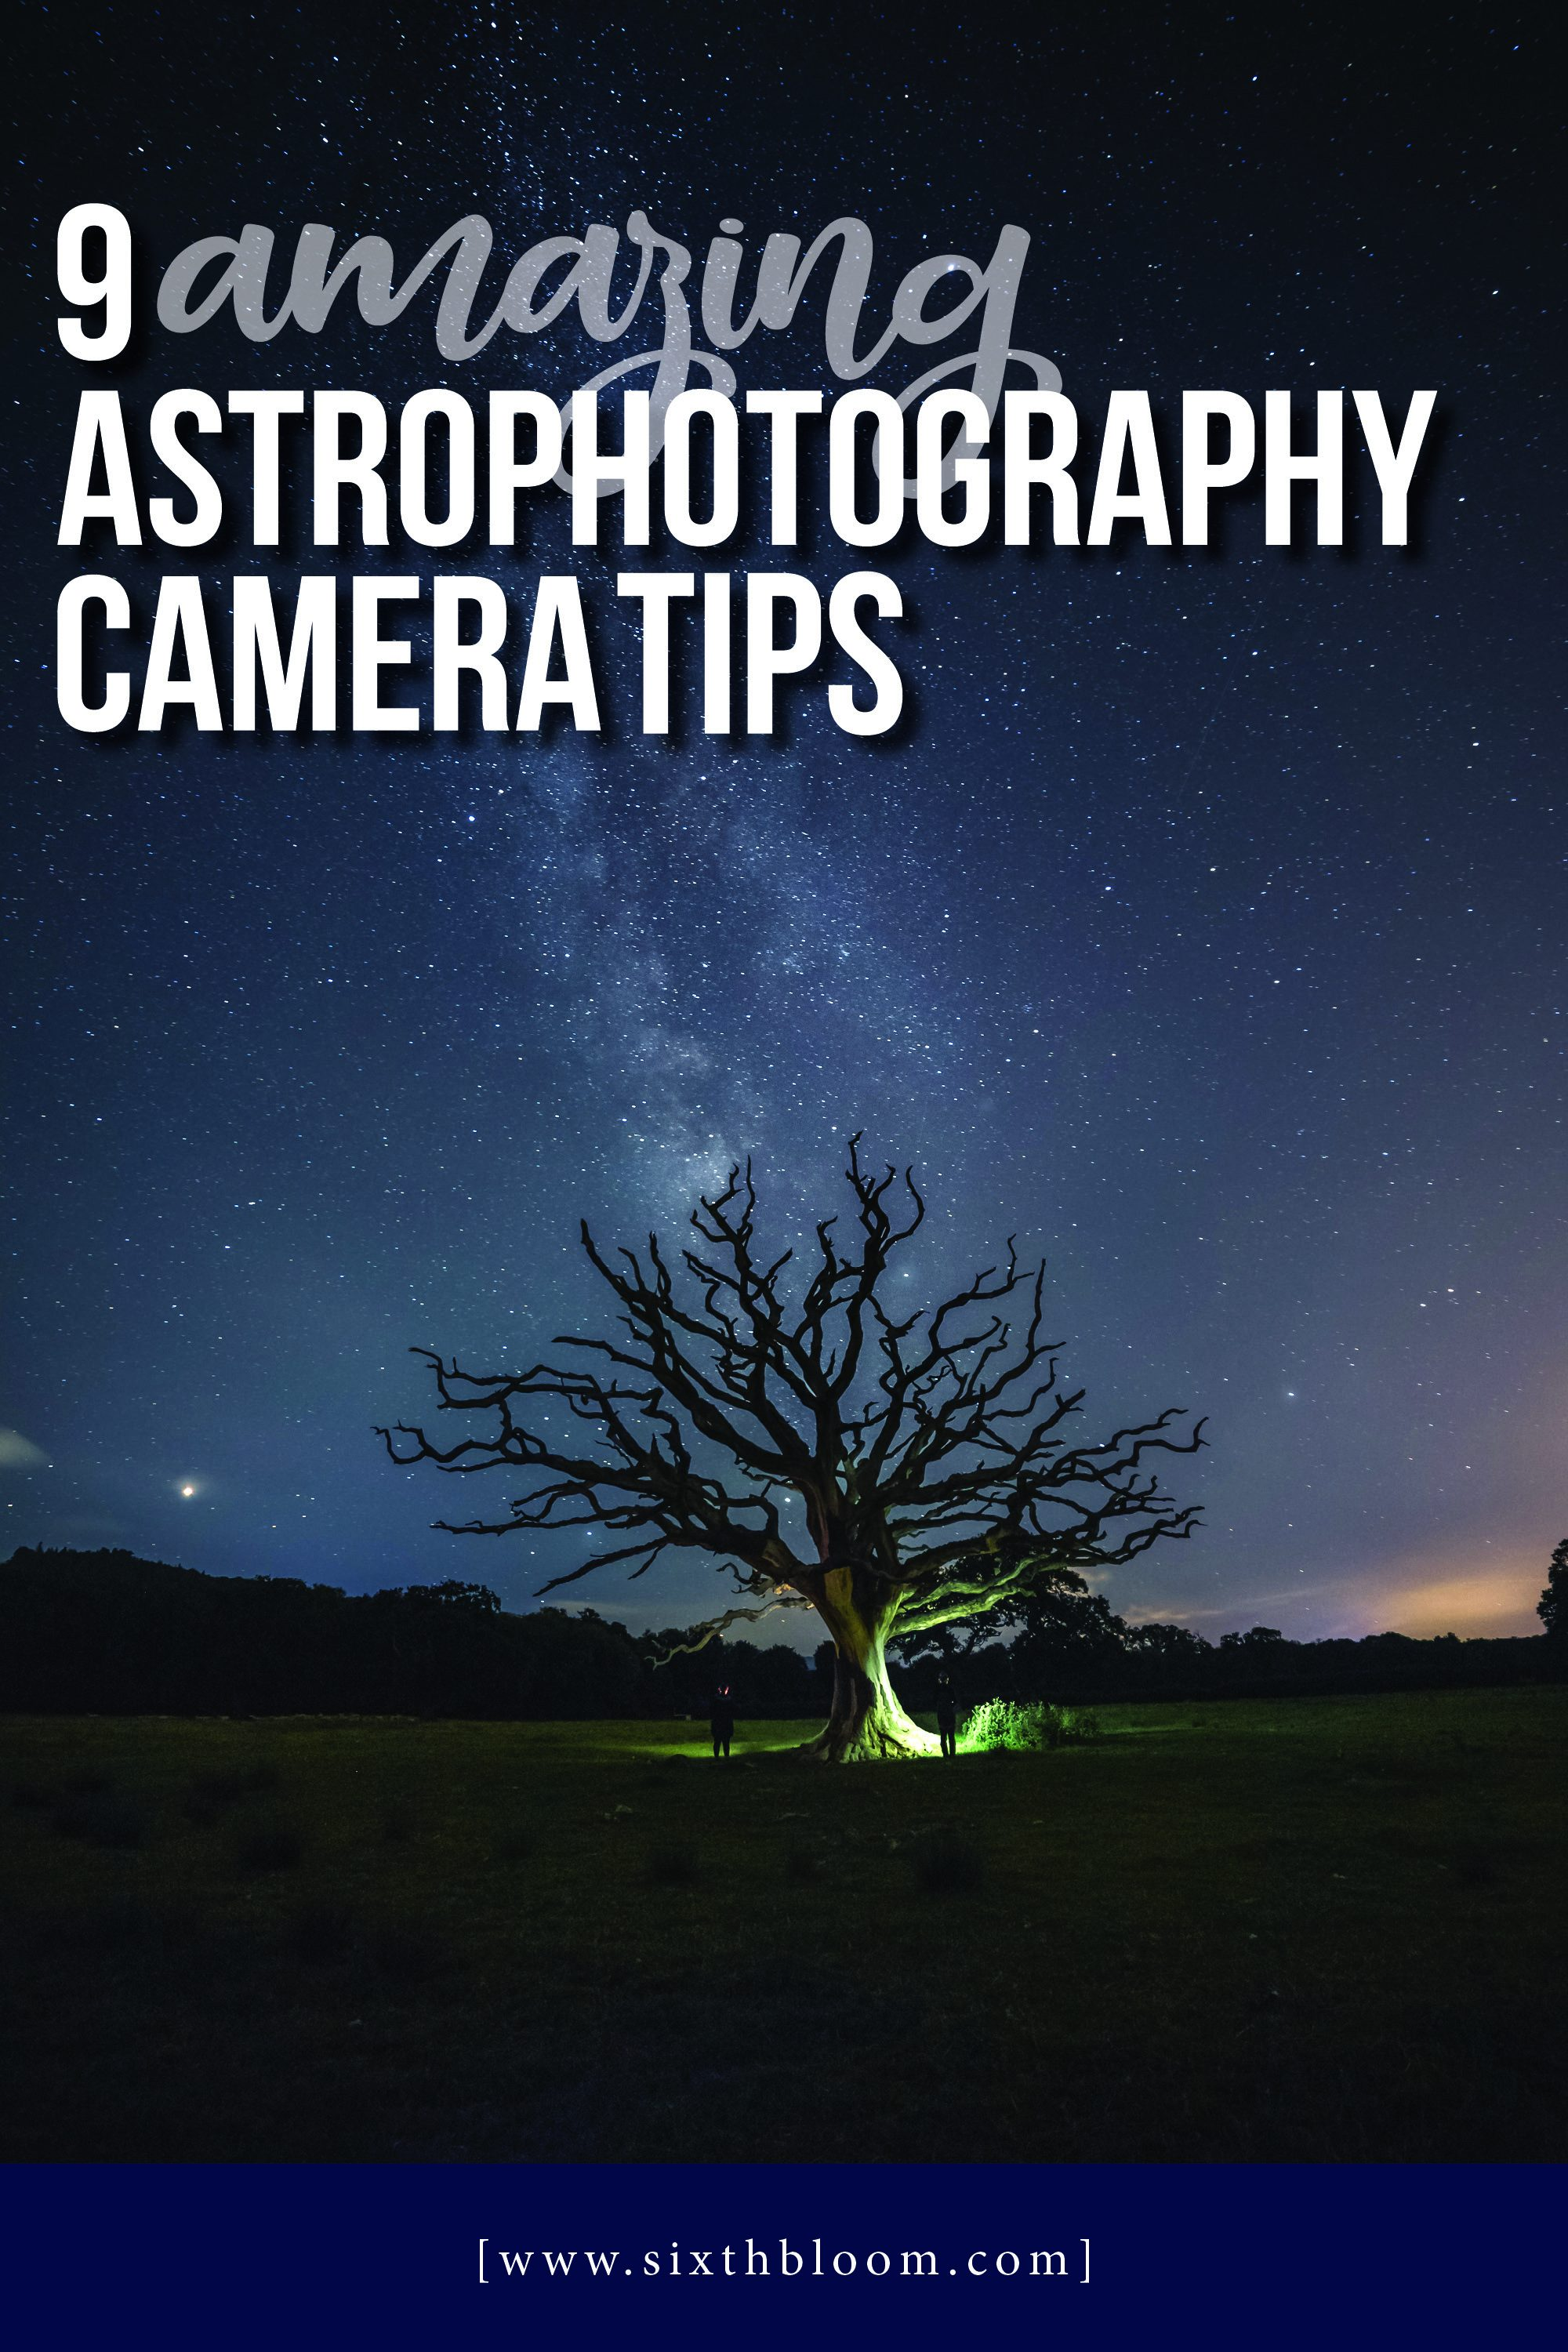 night photography of a tree and the milky way